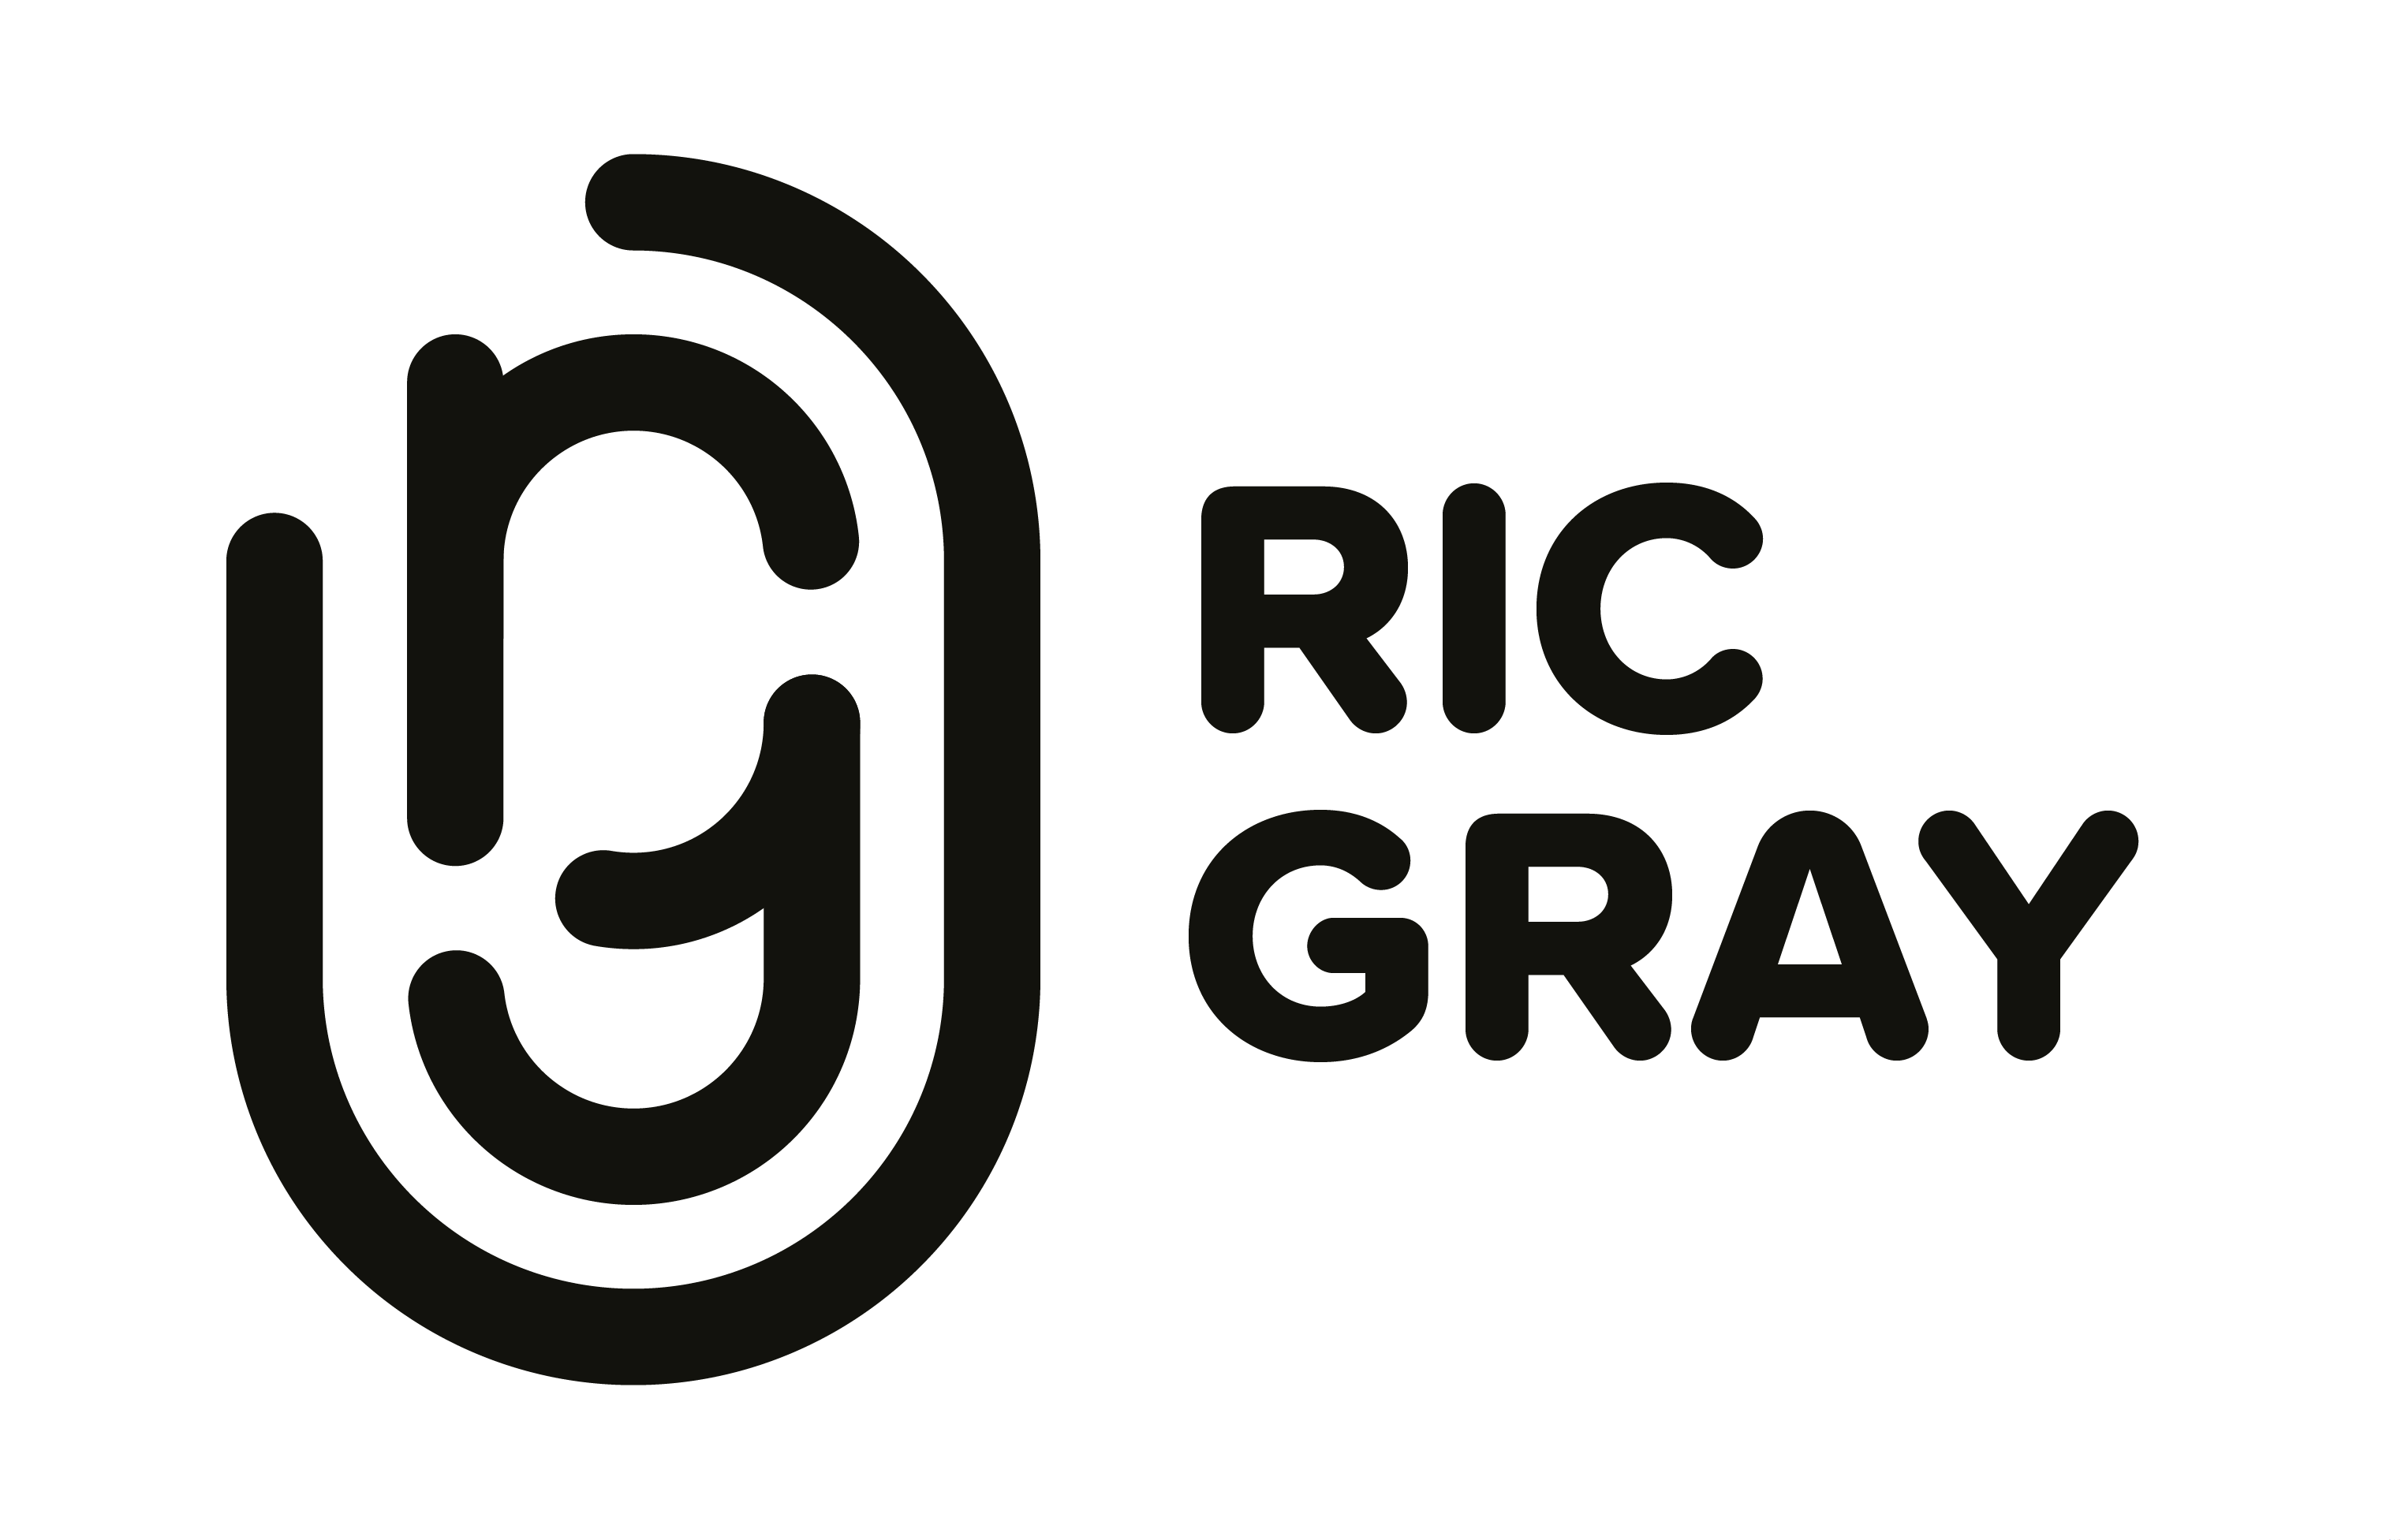 Richard Gray